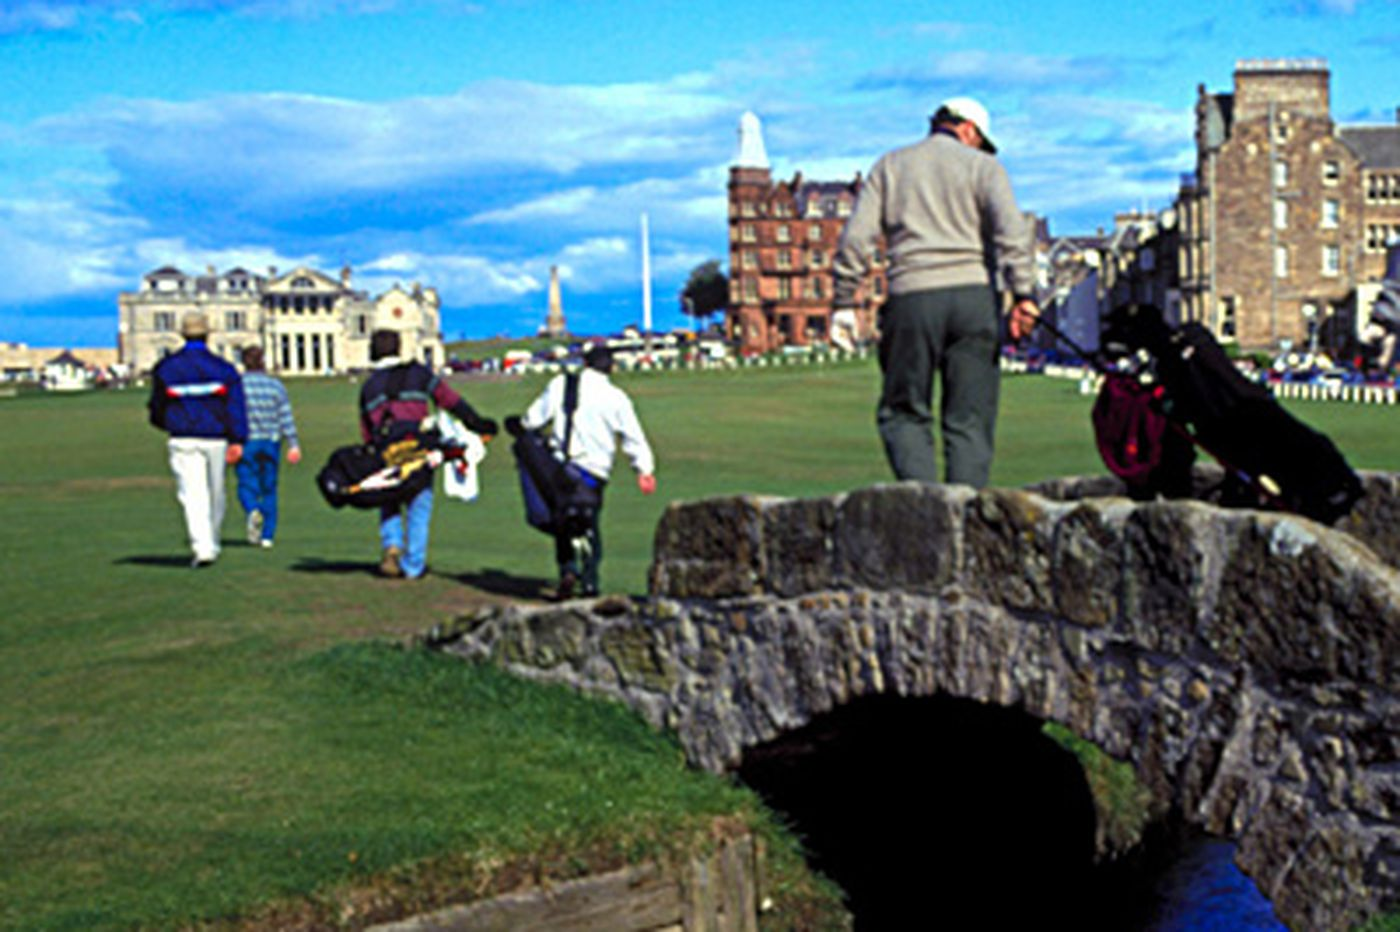 To golf's mecca: The Old Course at St. Andrews in Scotland